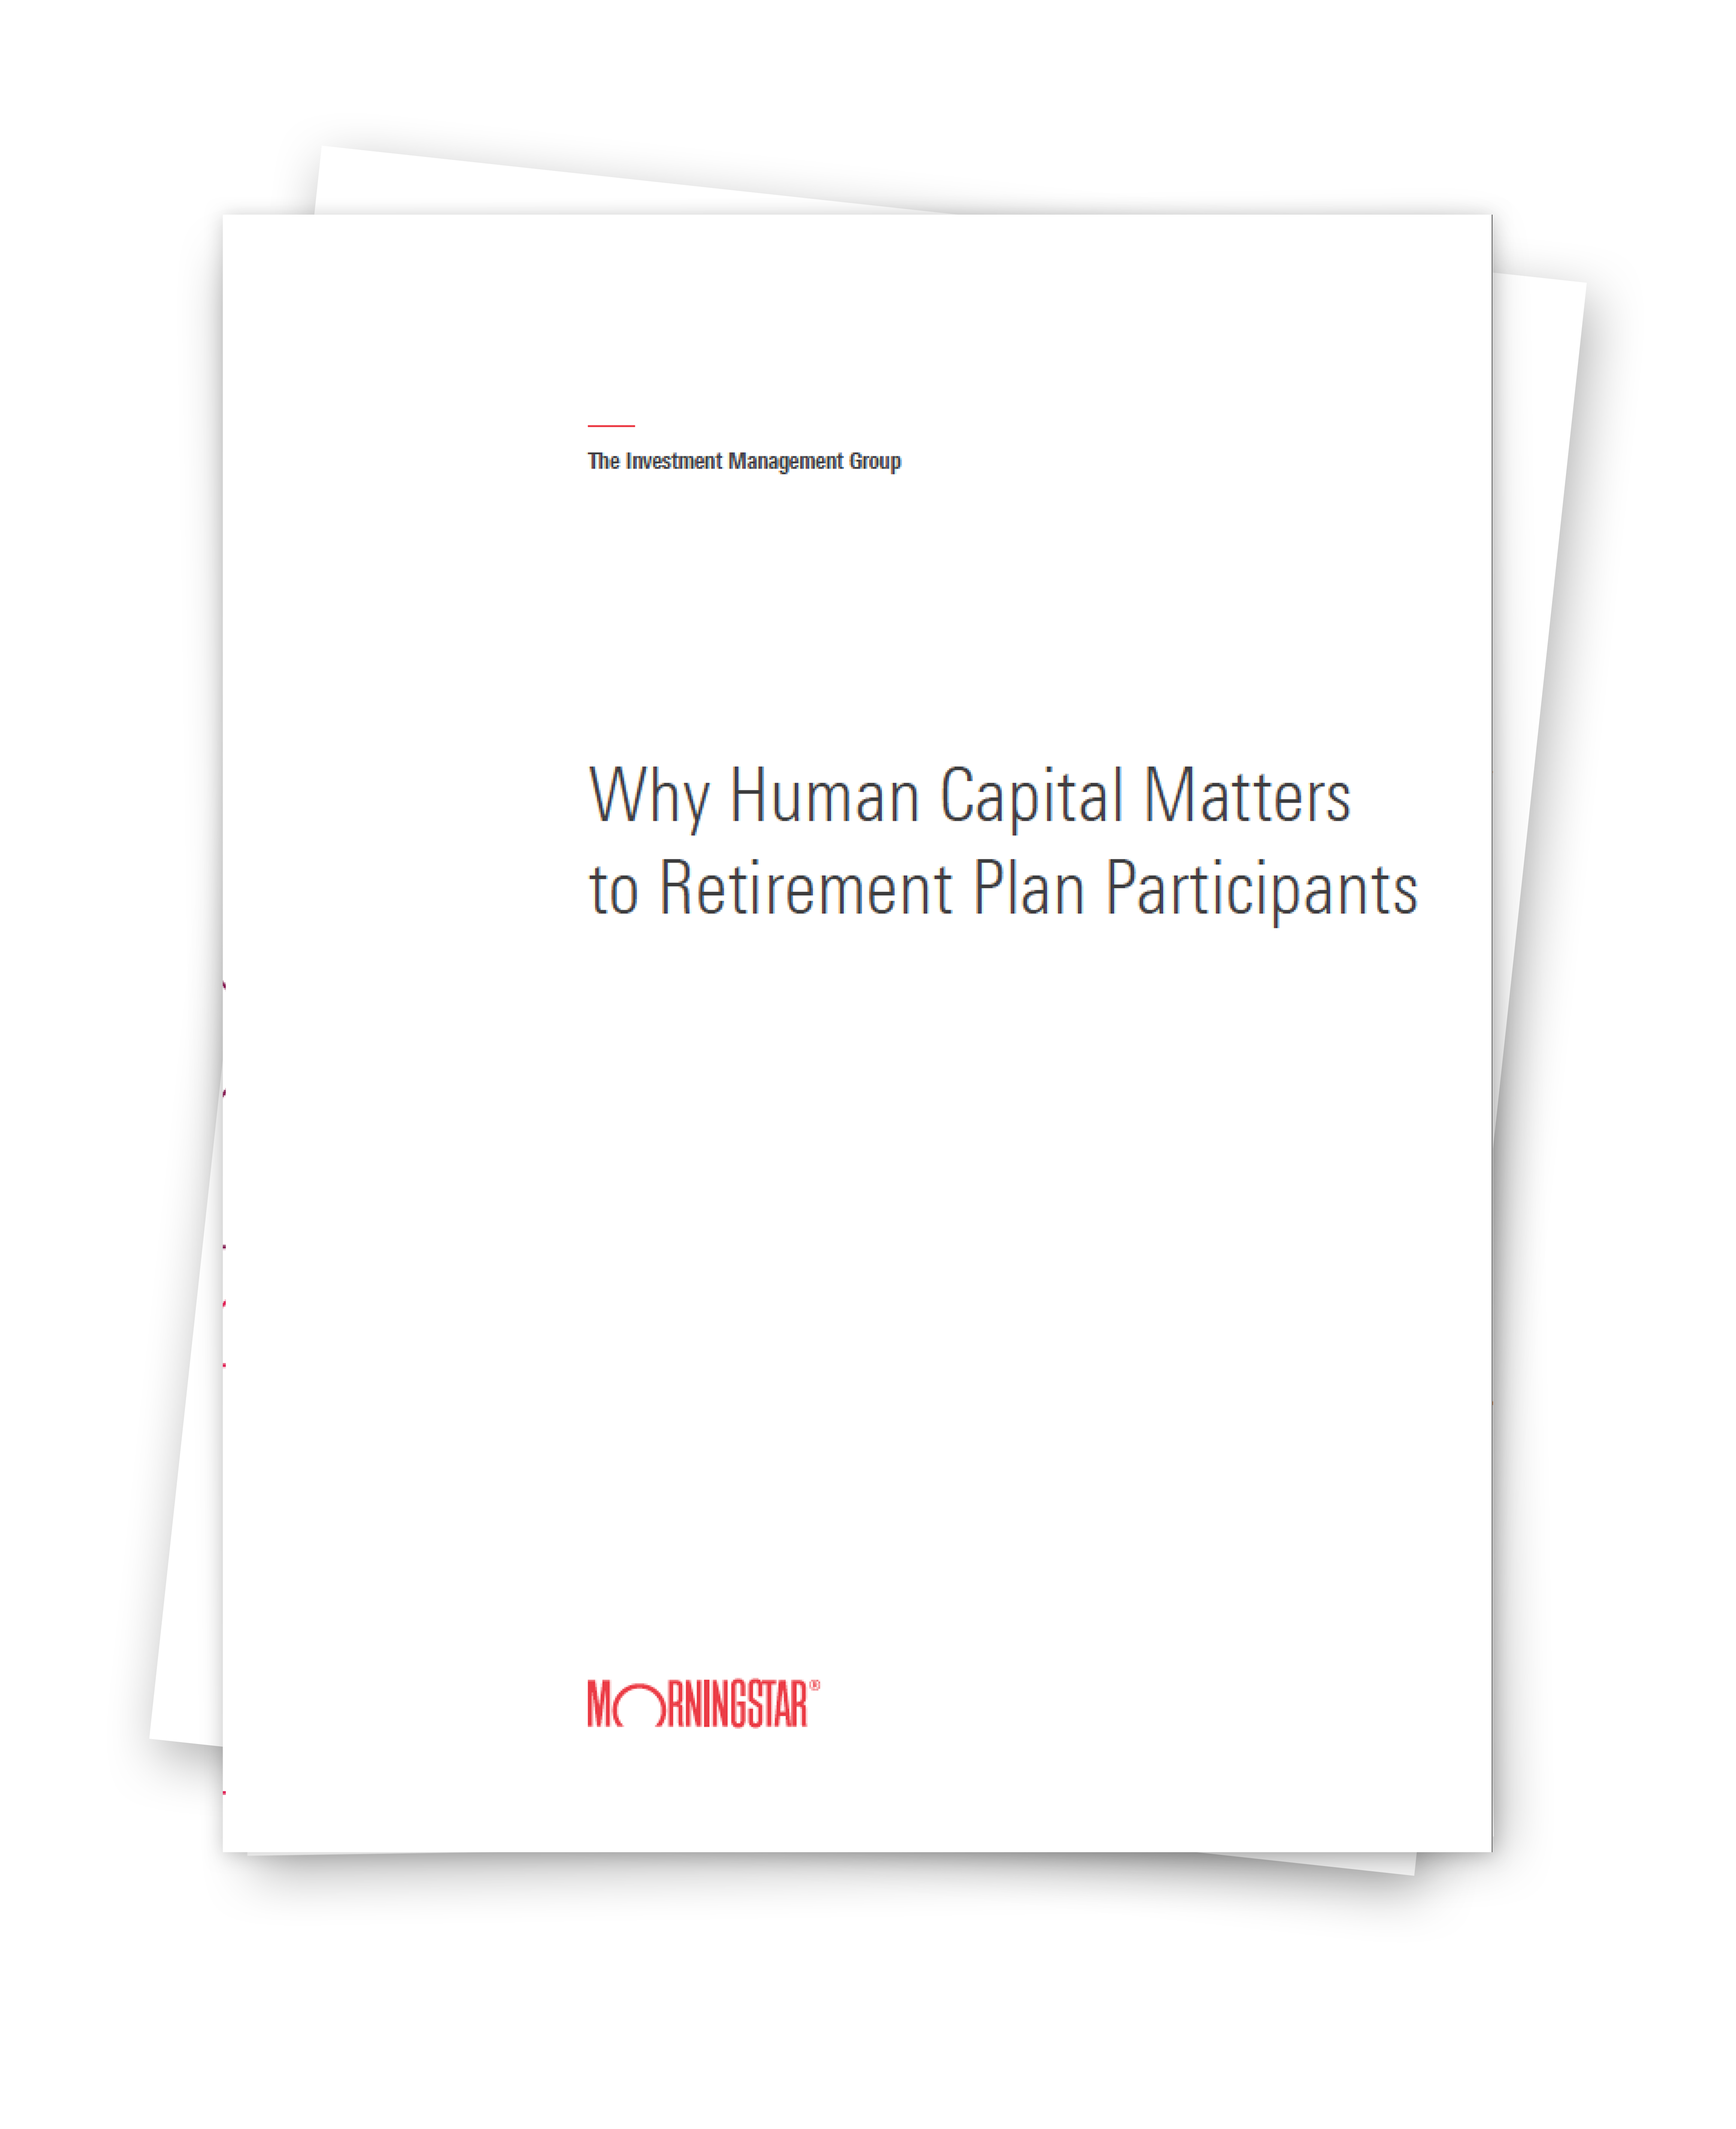 Paper Cover: Why Human Capital Matters to Retirement Plan Participants